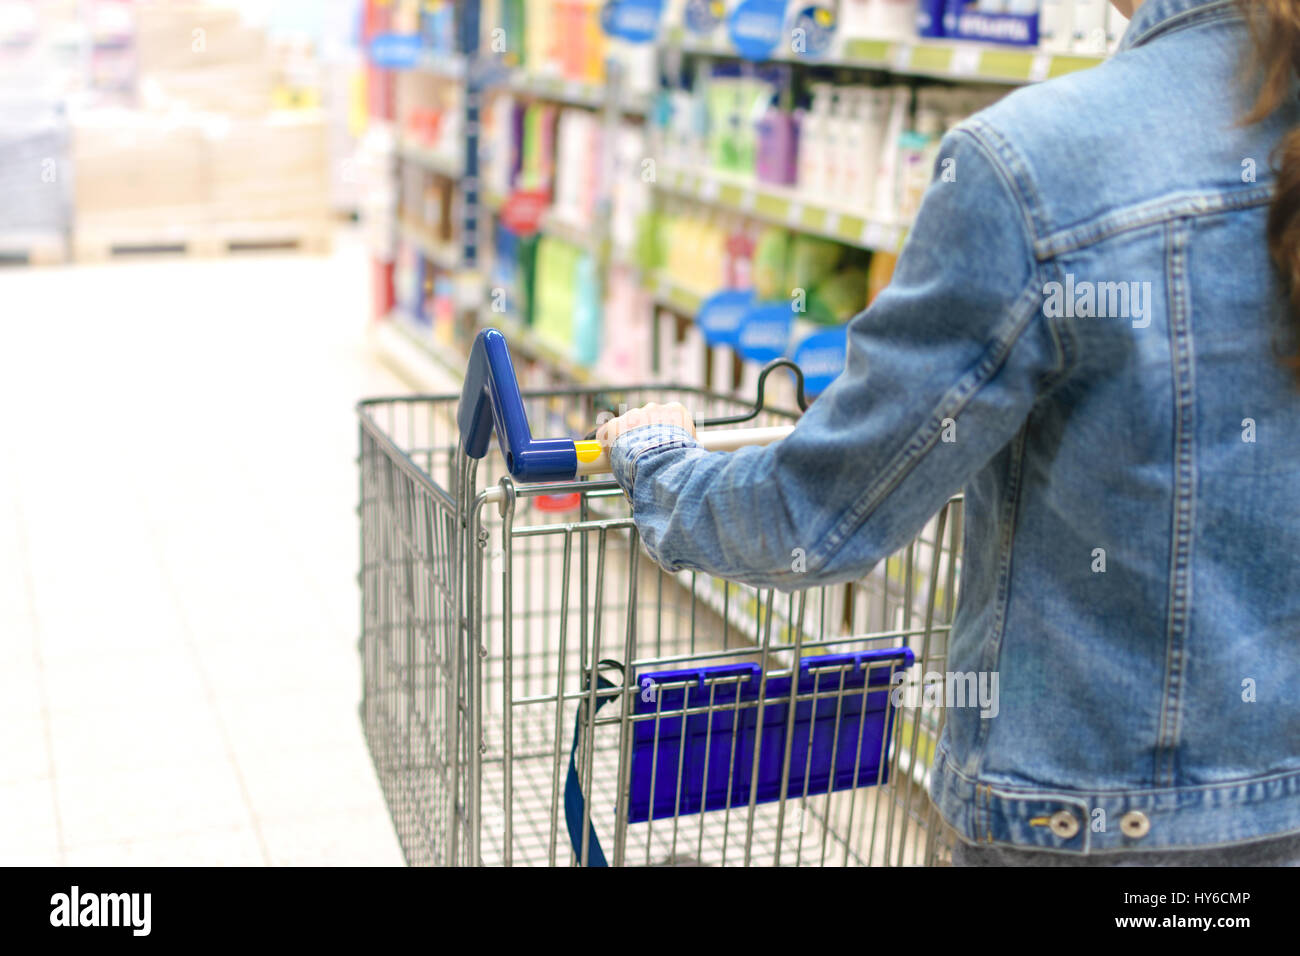 Young woman pushing empty shopping cart in a supermarket - Stock Image